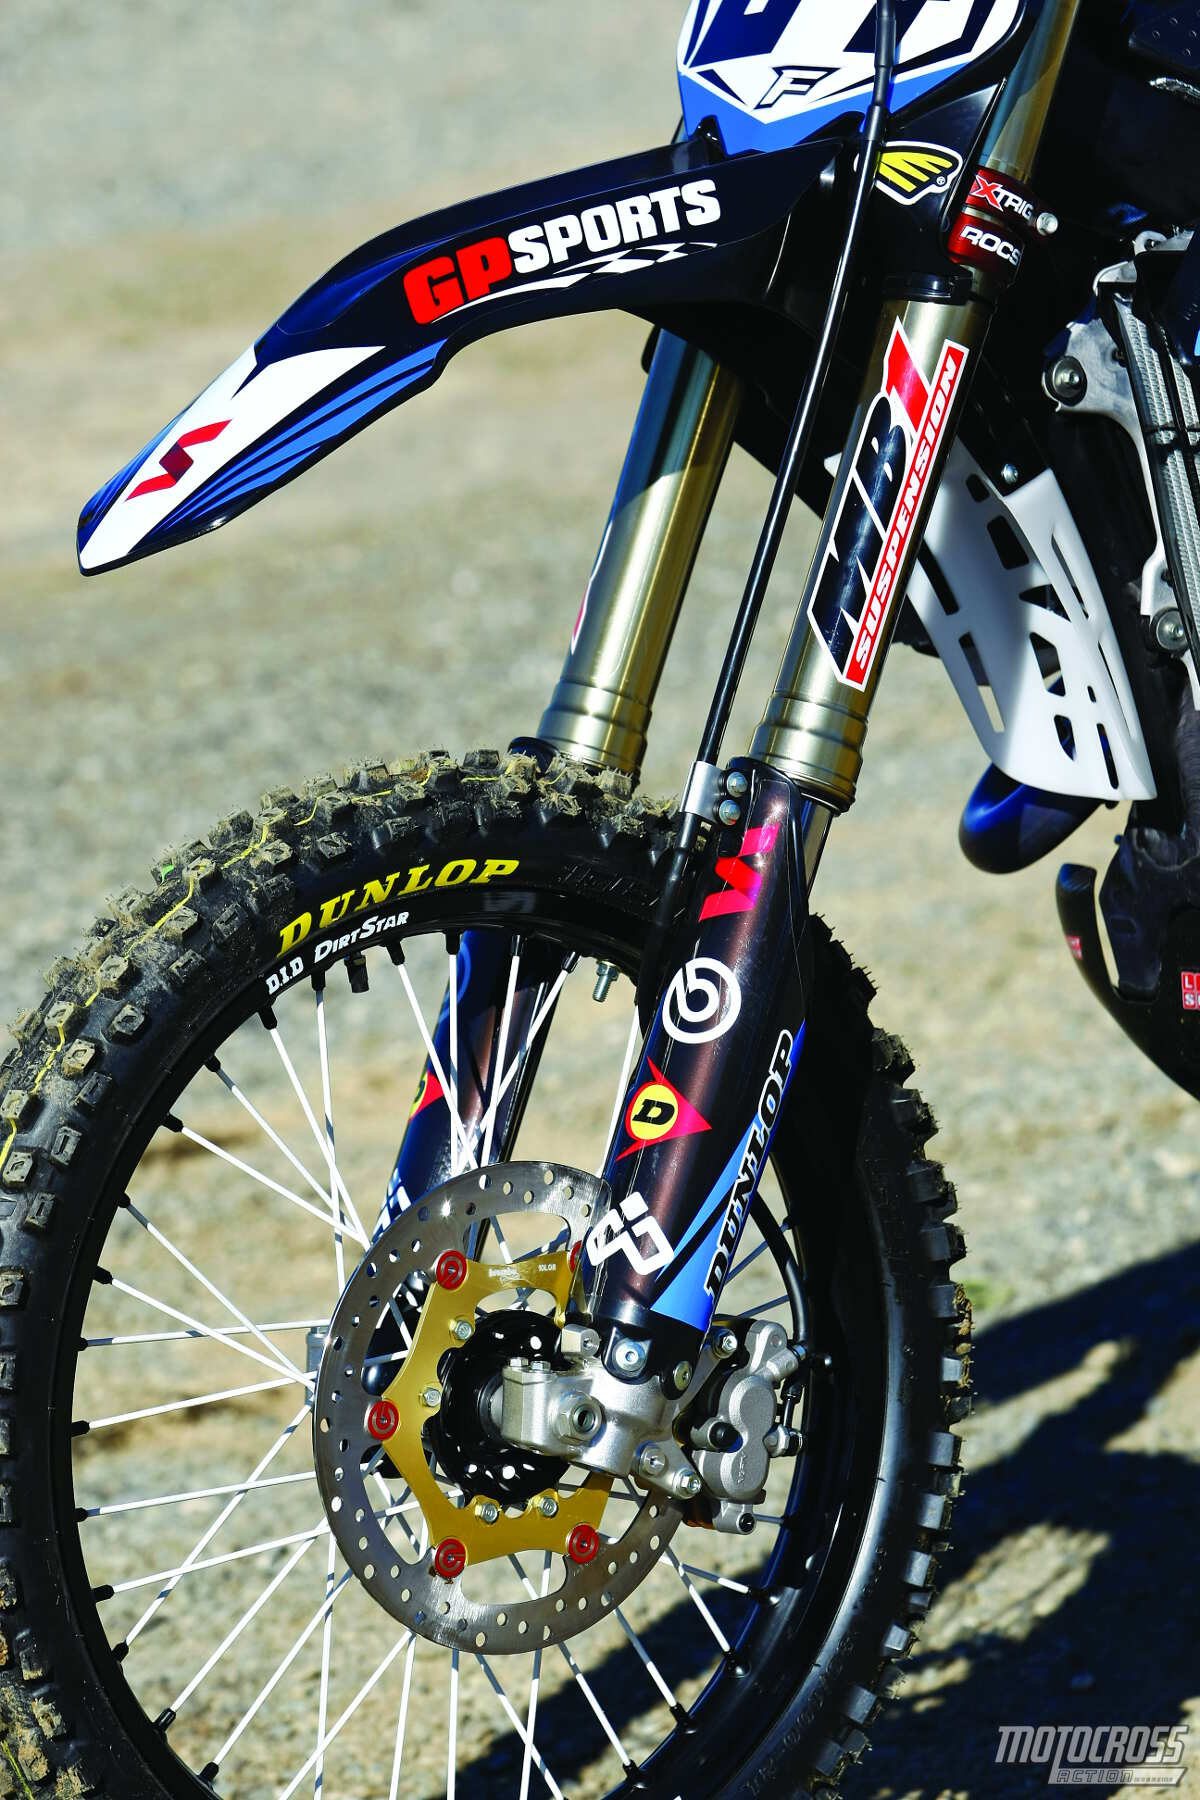 MB1 stiffened up the suspension for our Pro-level testers, while the forks  maintained